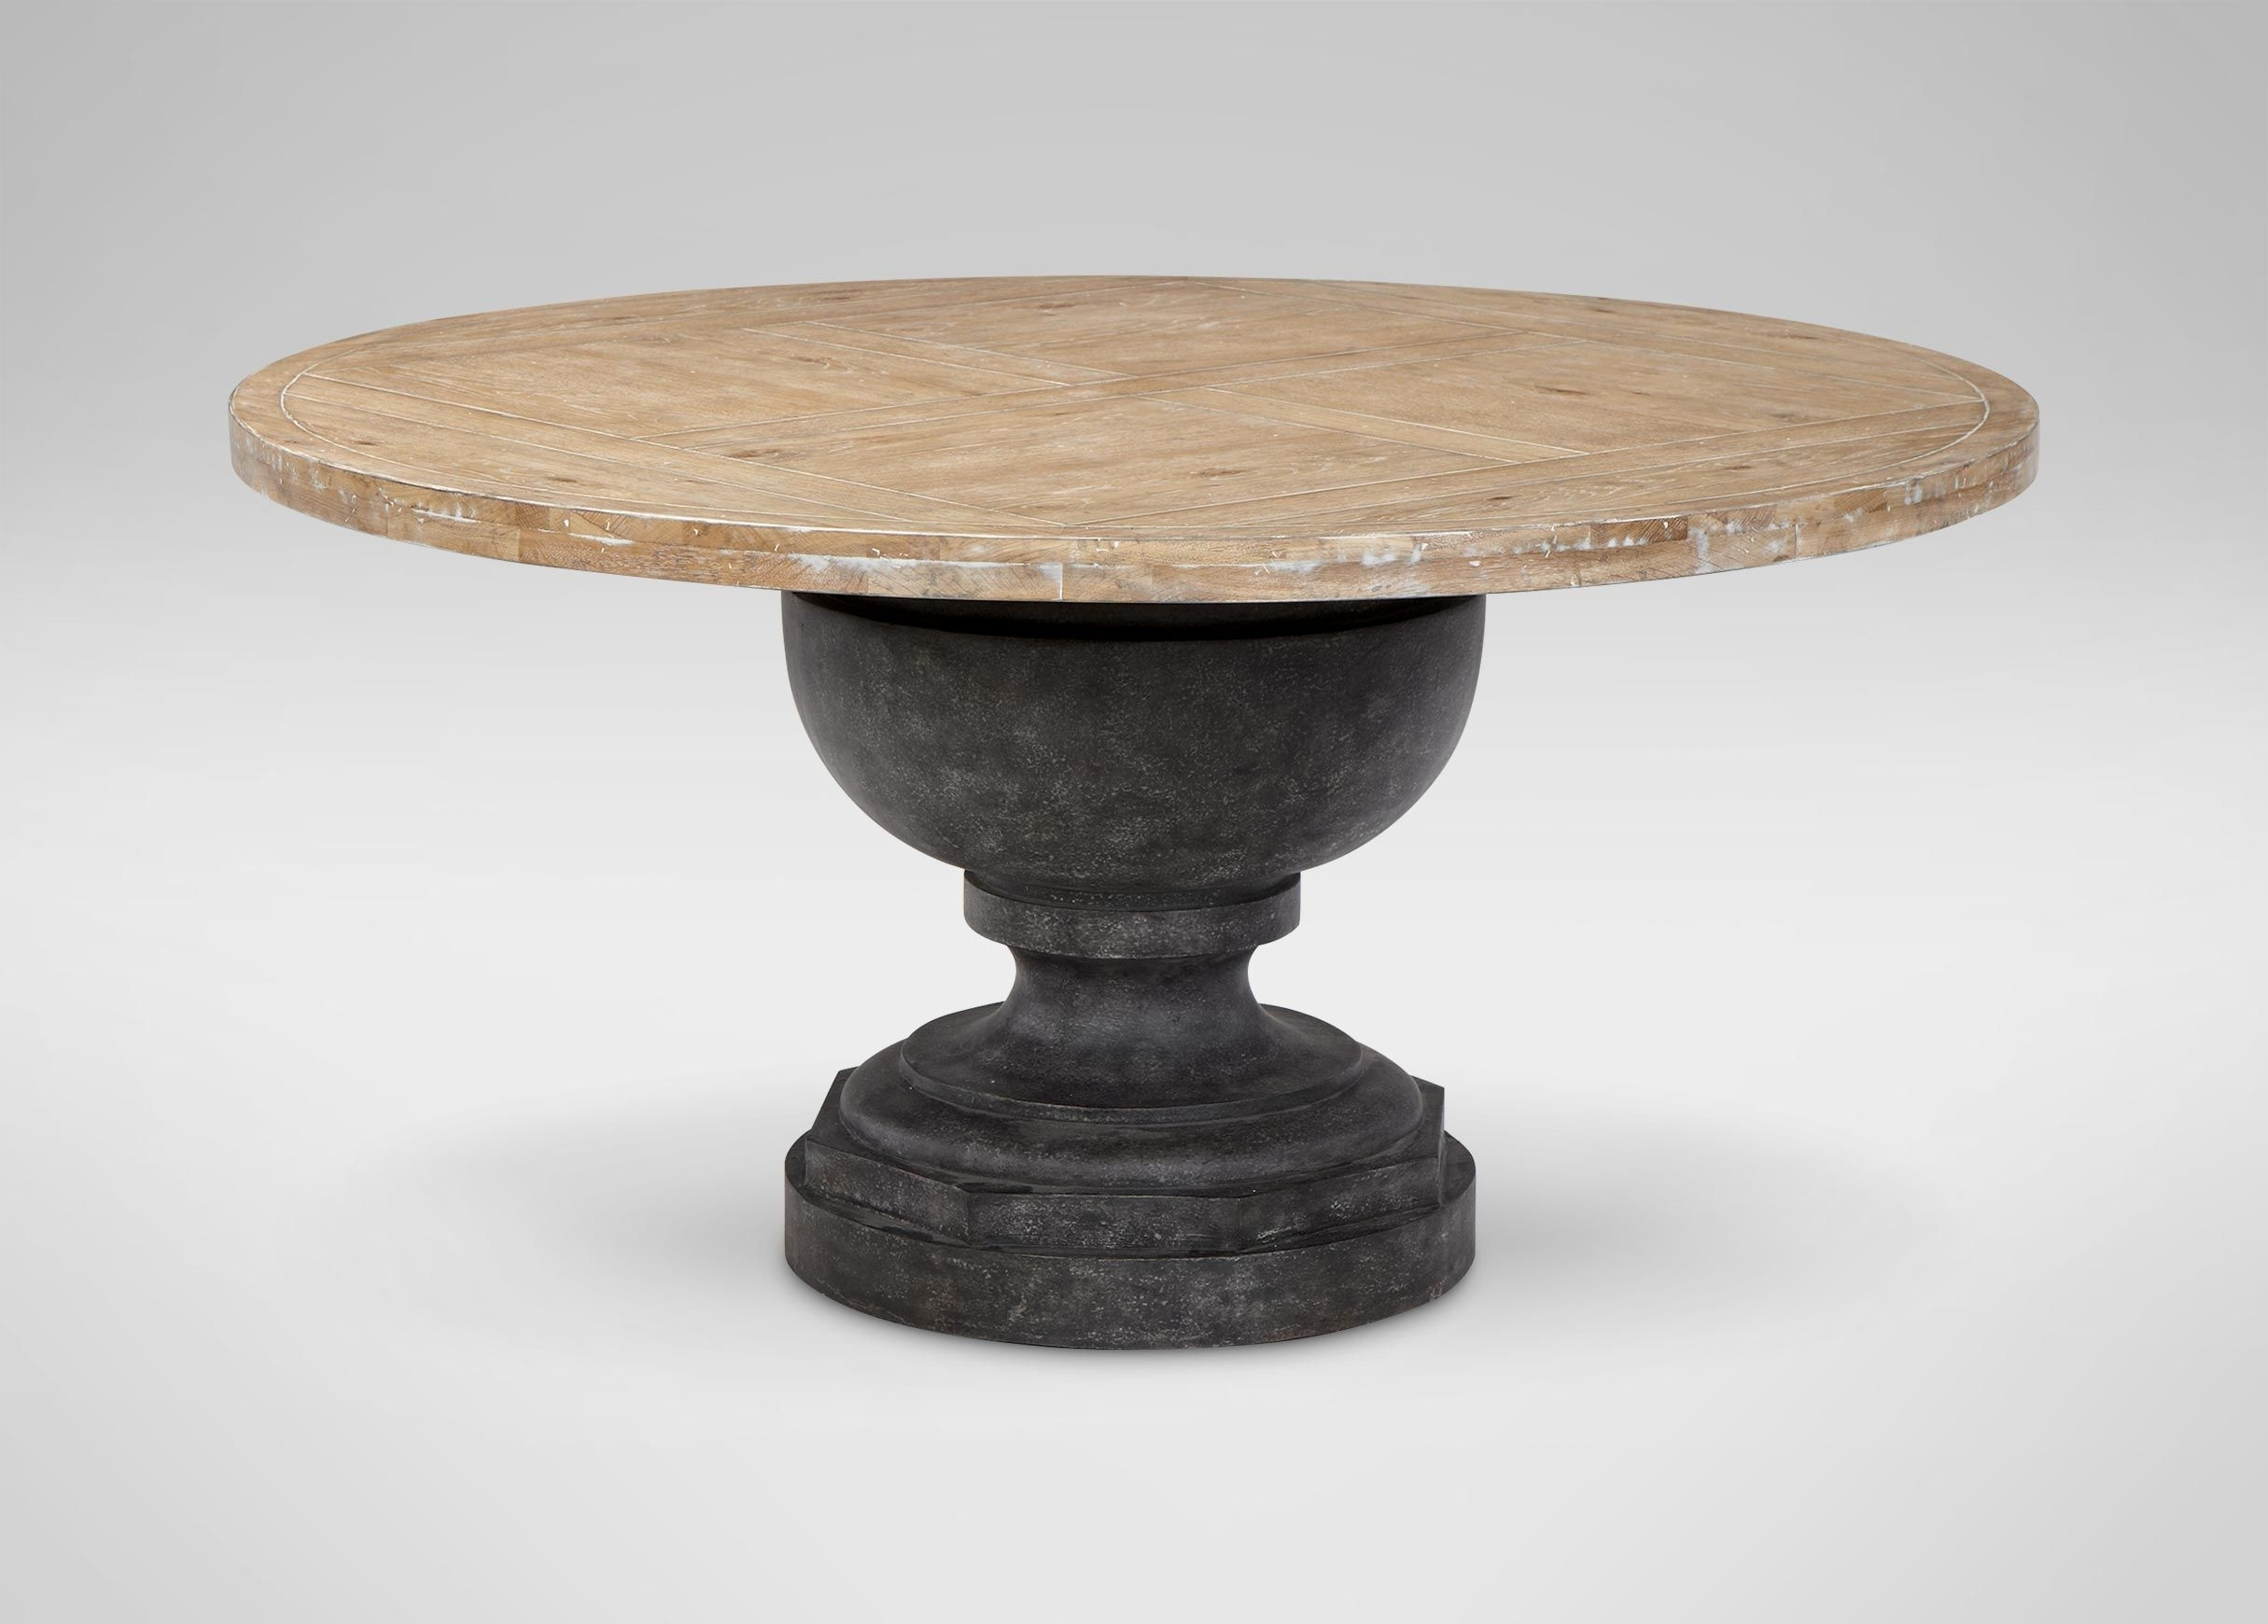 Shop New Dining Room Furniture | What's New | Ethan Allen Inside Most Up To Date Helms Round Dining Tables (View 14 of 20)